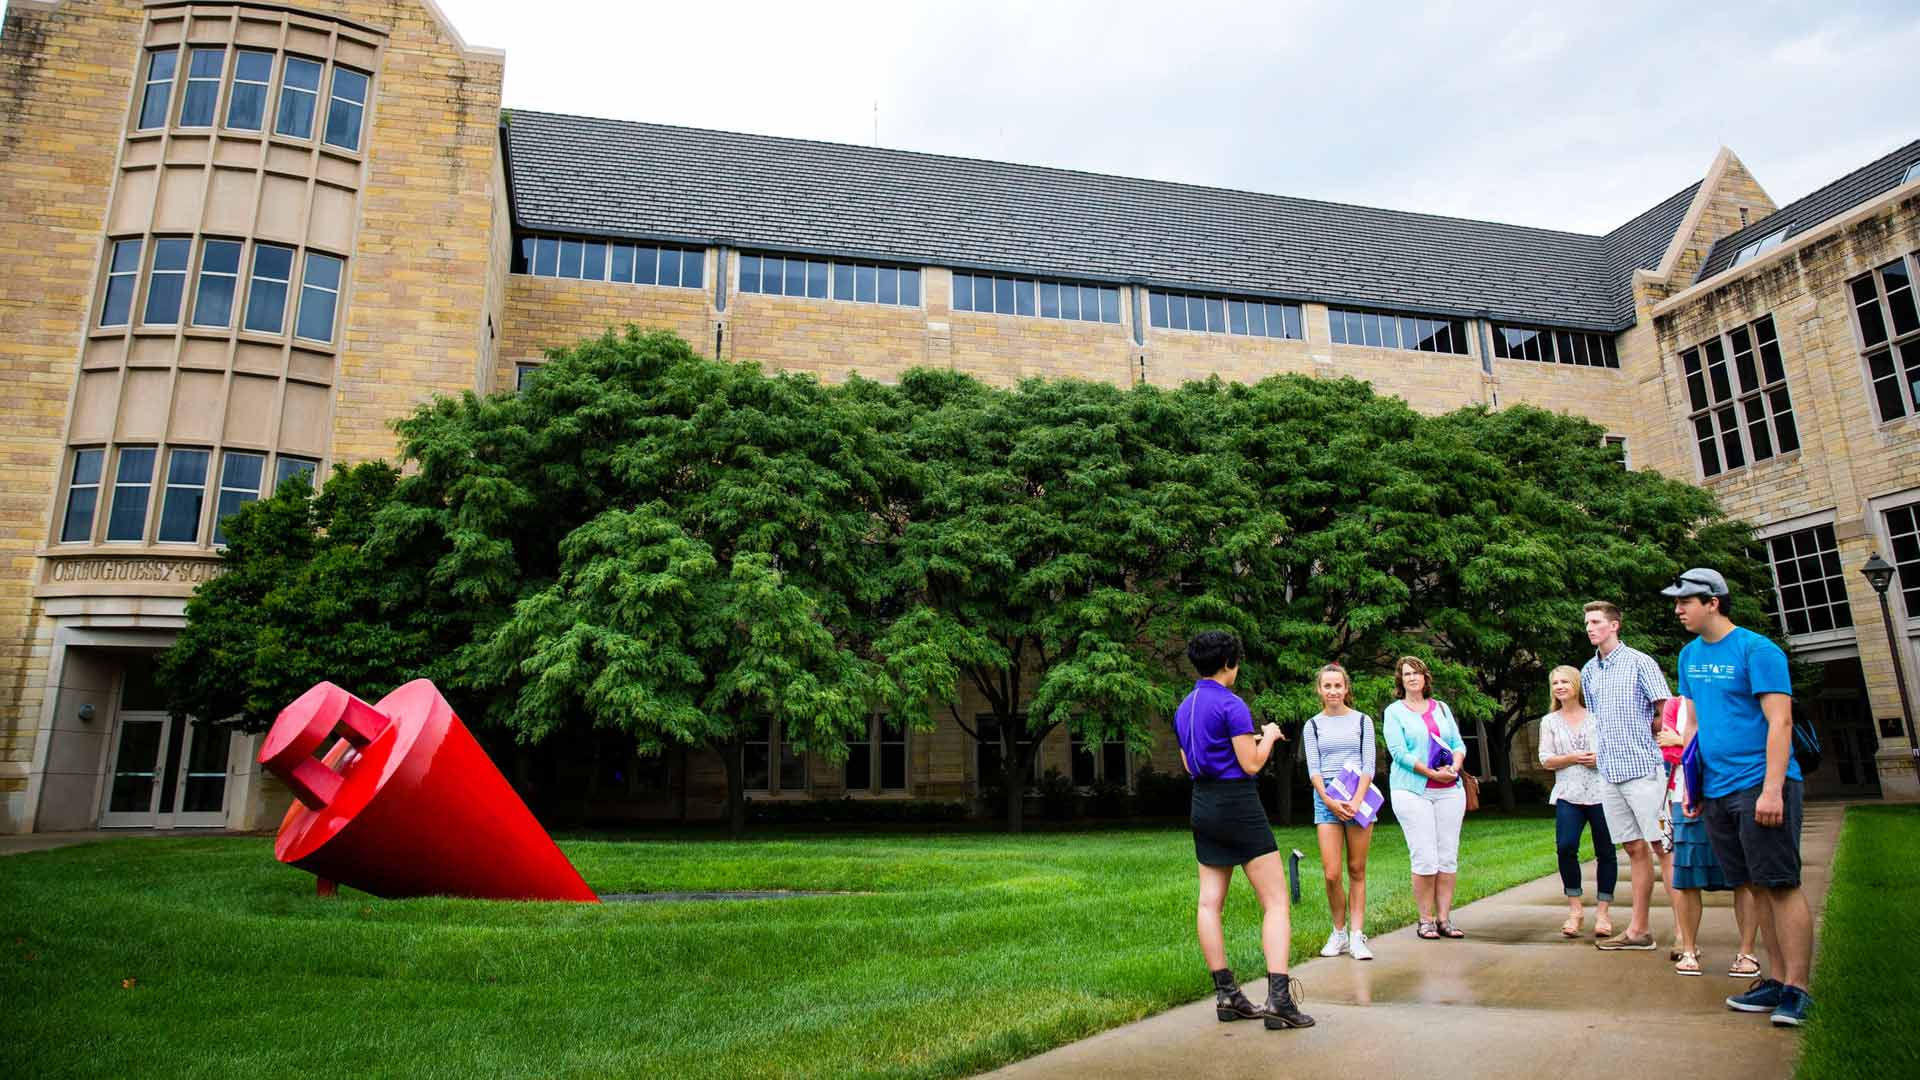 Tour guide and group of high school students and their parents talk near a red sculpture.